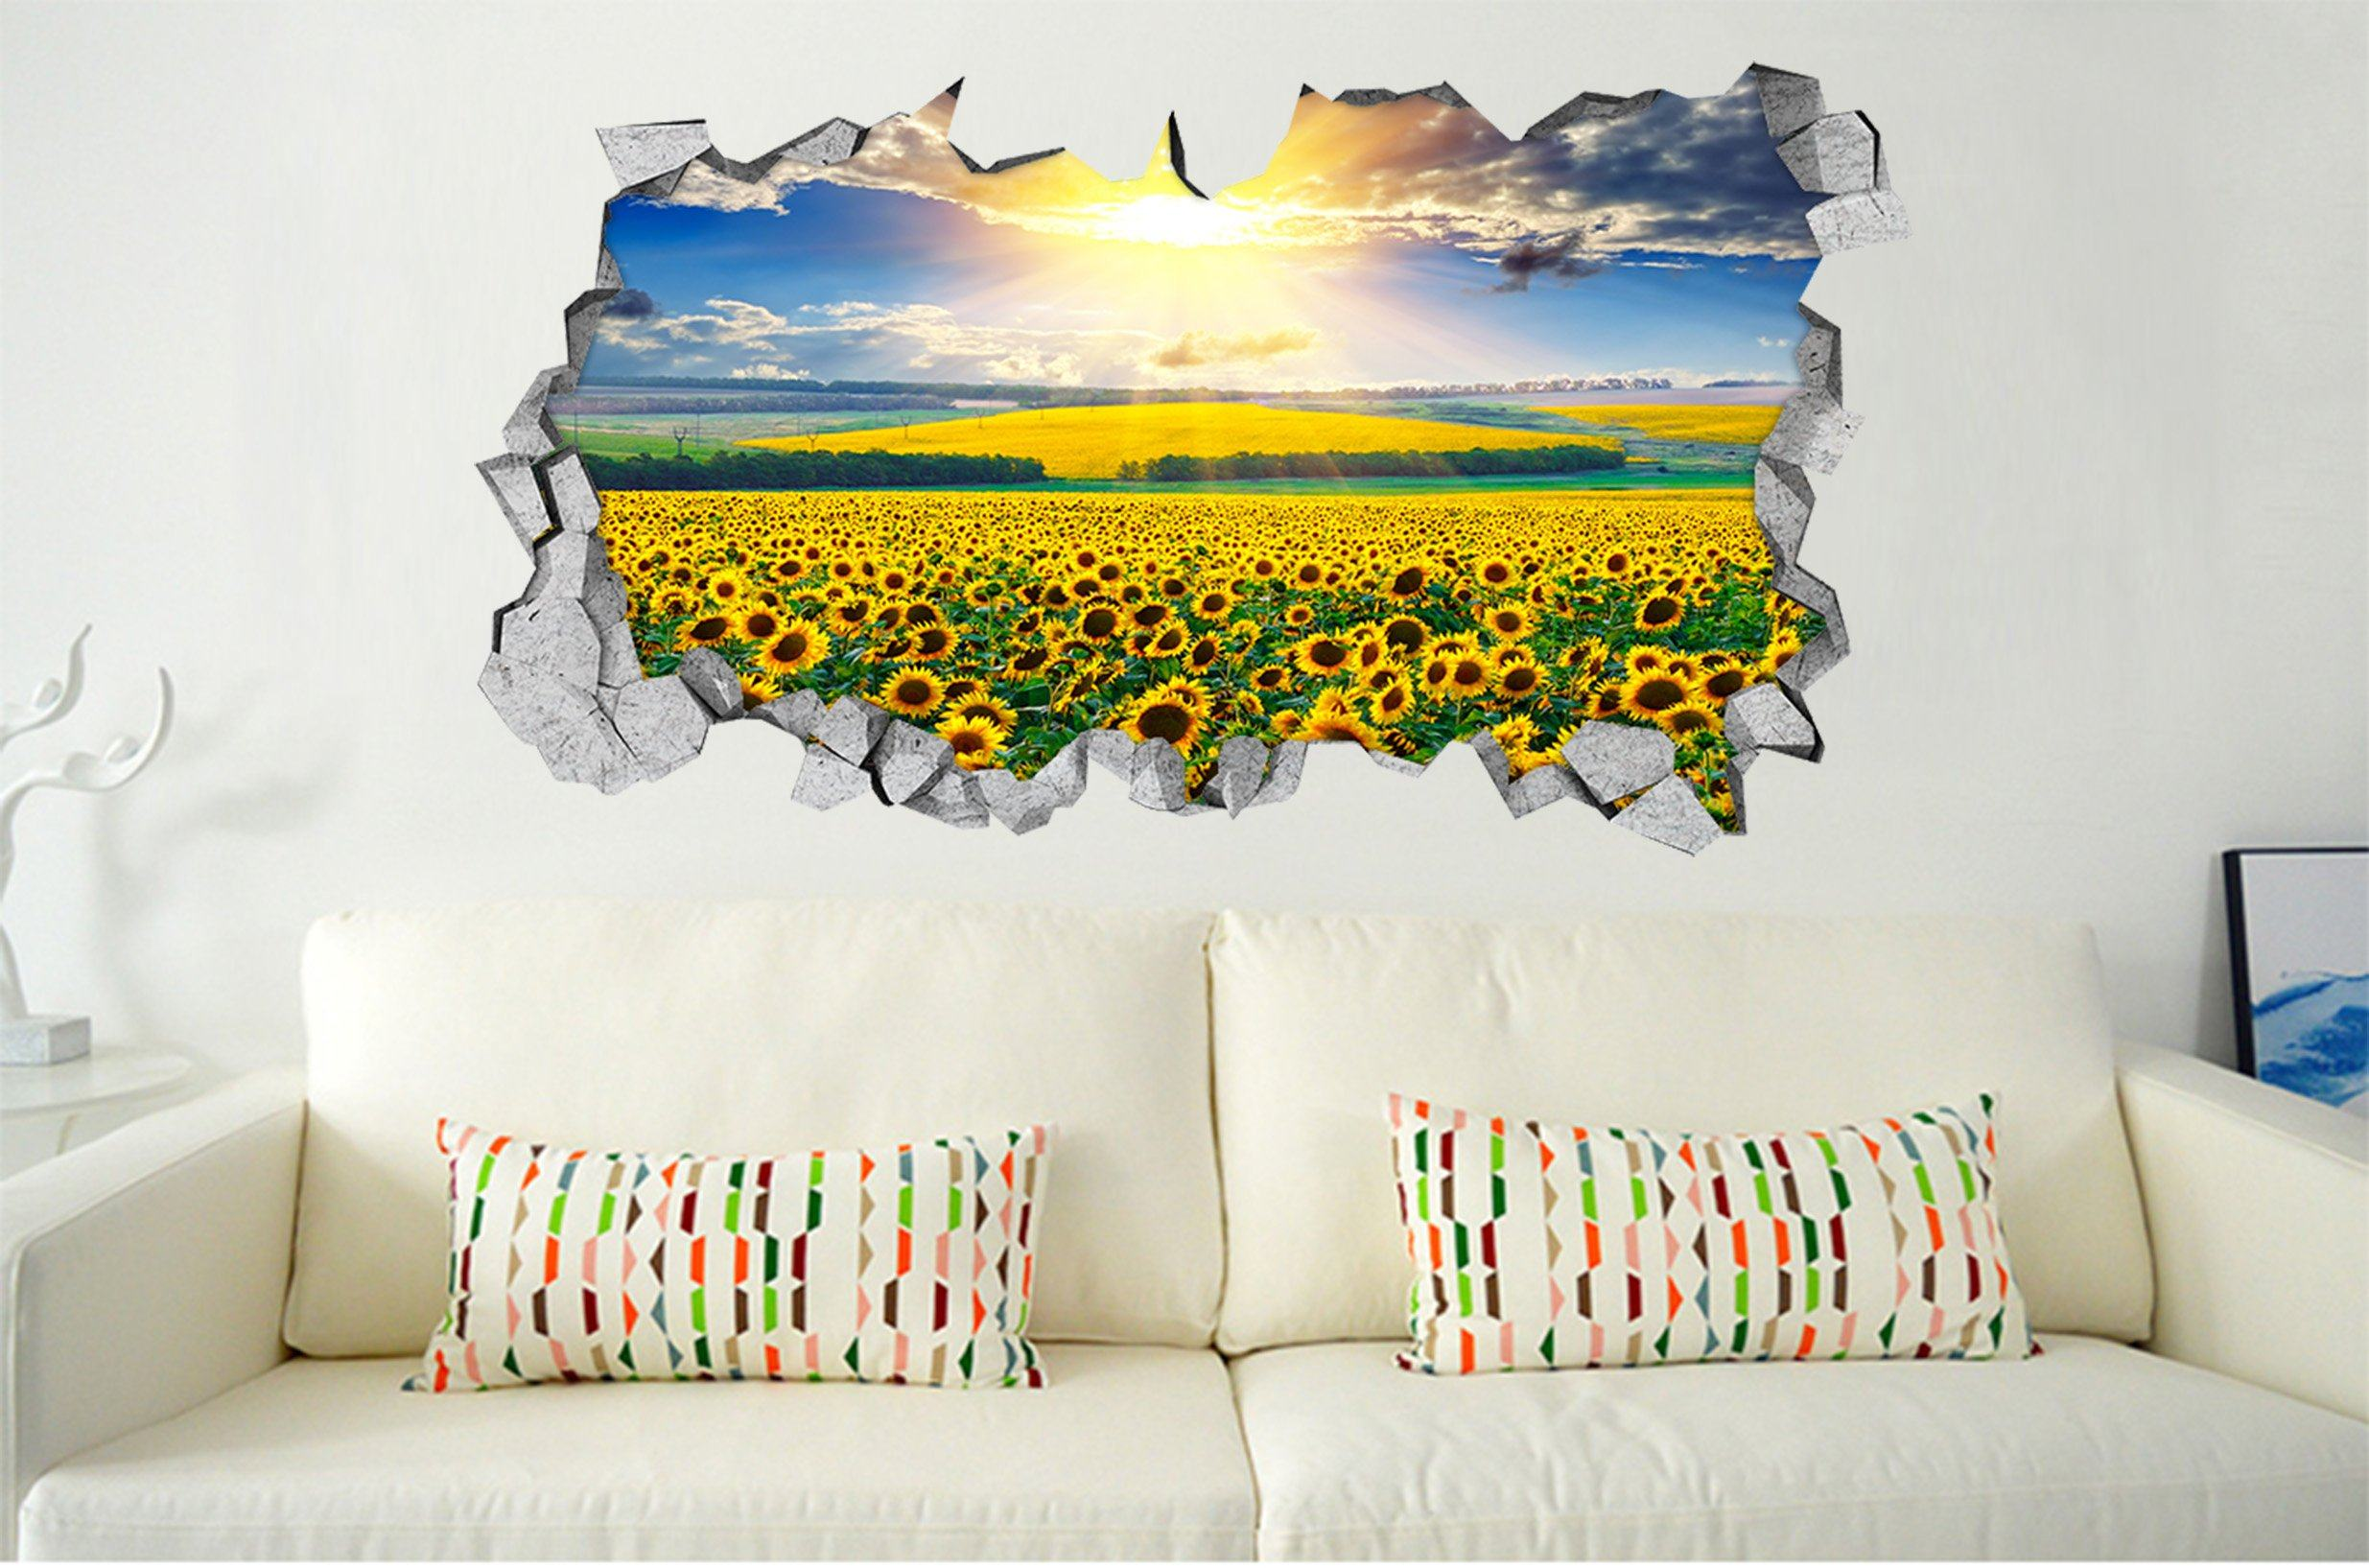 3D Sunflowers Field Sunshine 186 Broken Wall Murals Wallpaper AJ Wallpaper